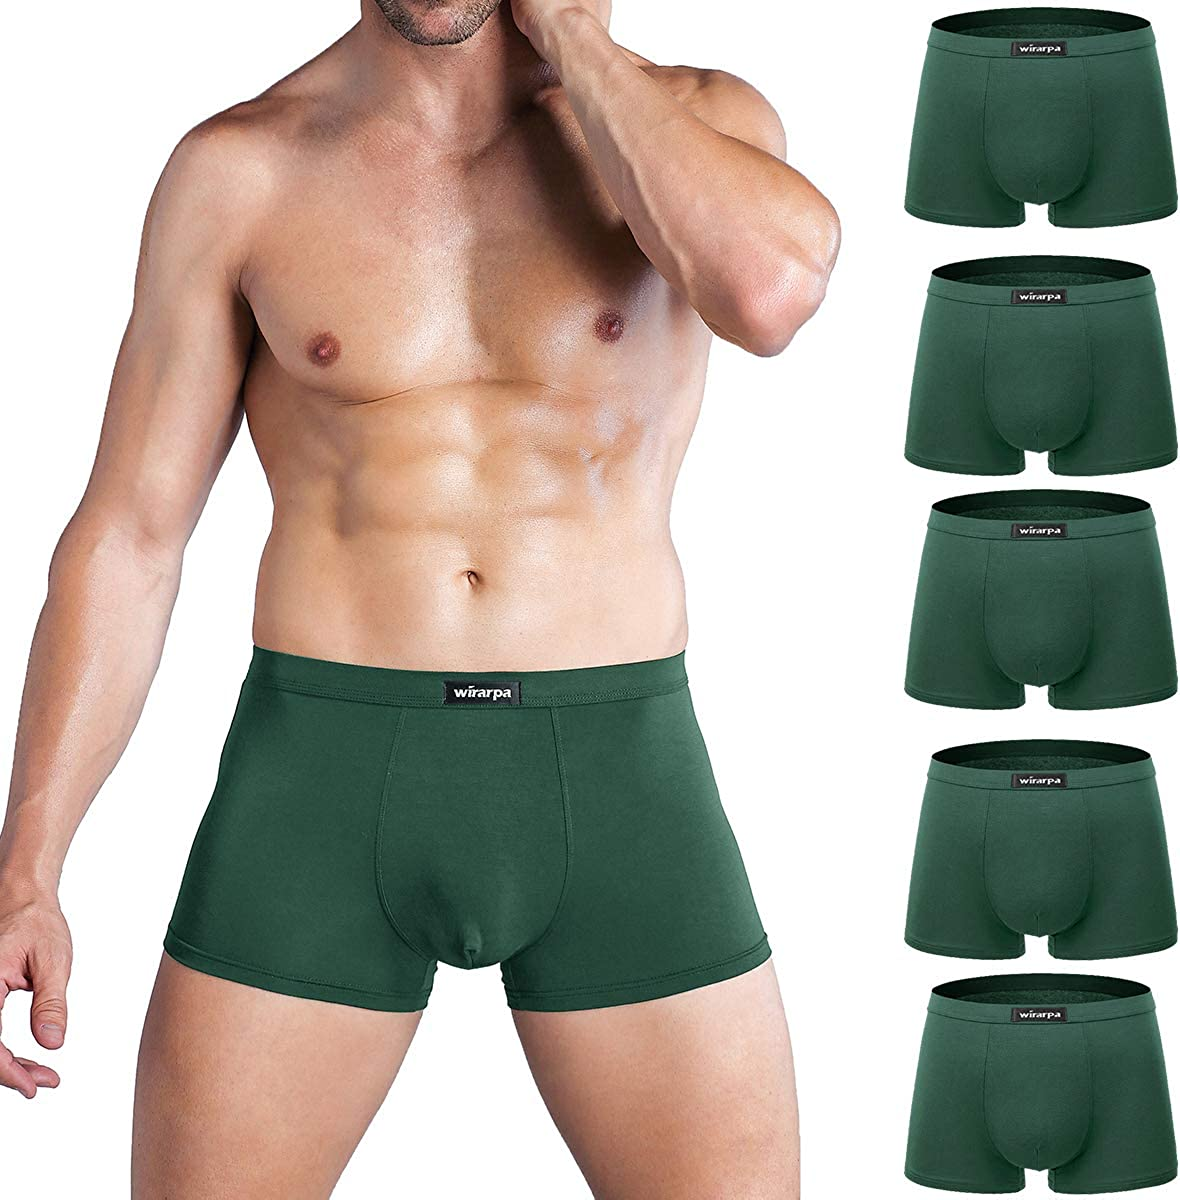 wirarpa Mens Ultra Soft Modal Underwear Boxer Brief Covered Waistband Multipack